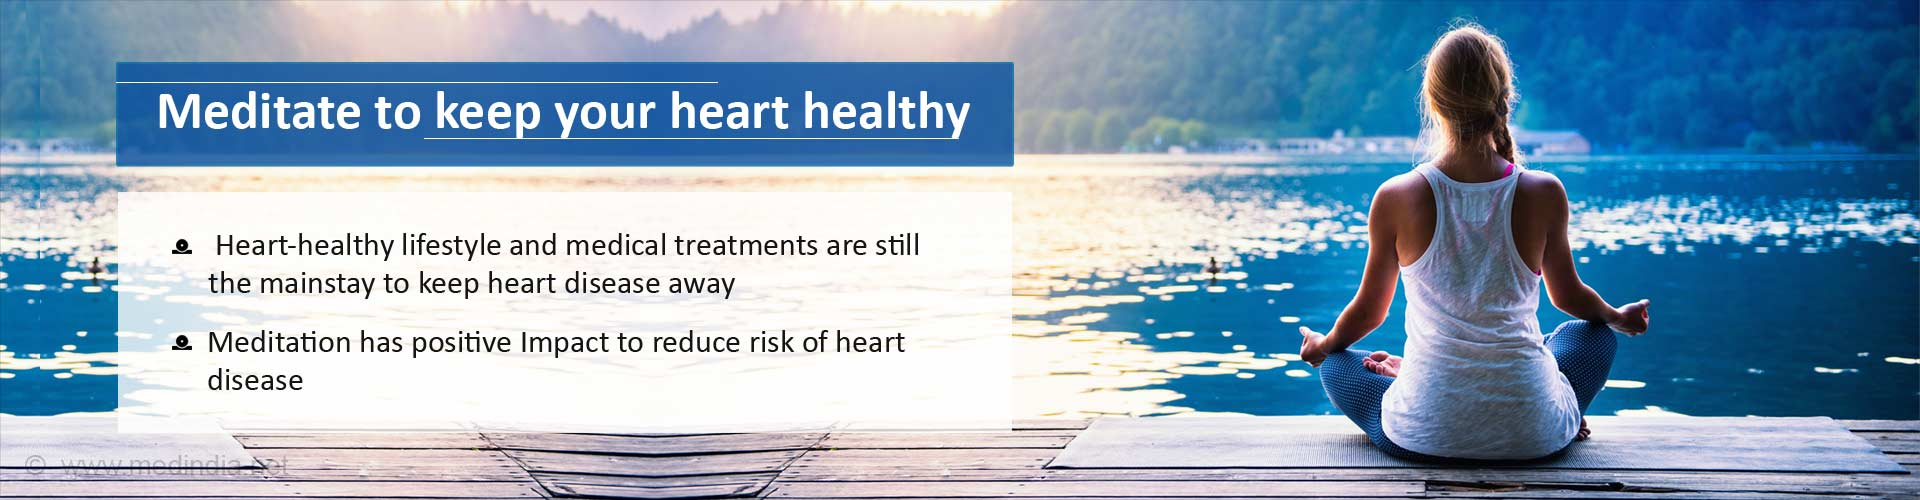 Meditate to keep your heart healthy